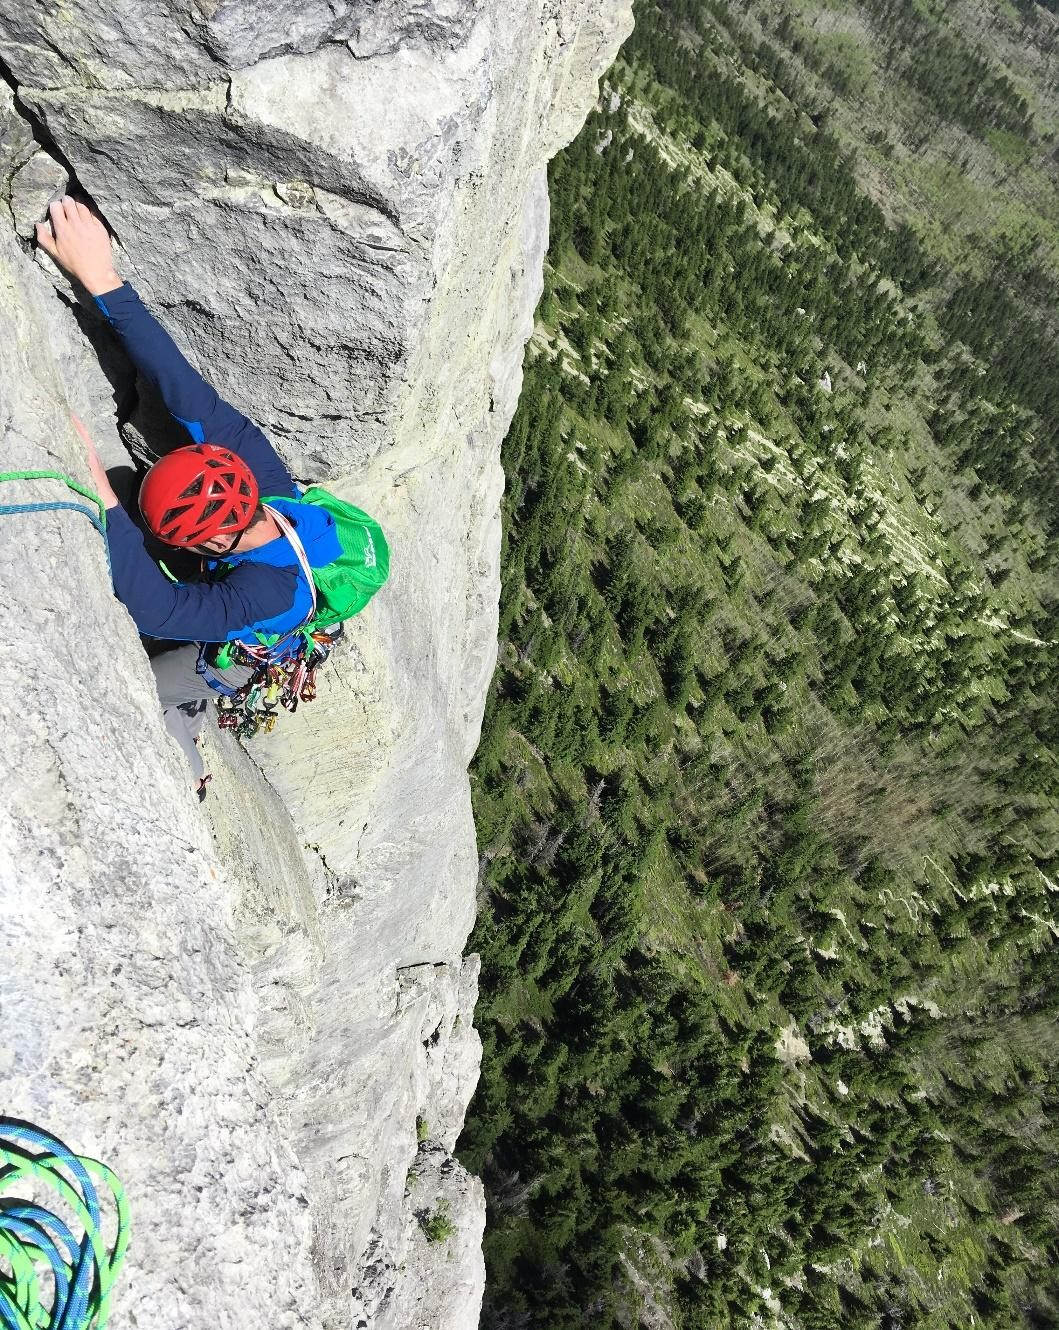 Branden on Khal Wall Route